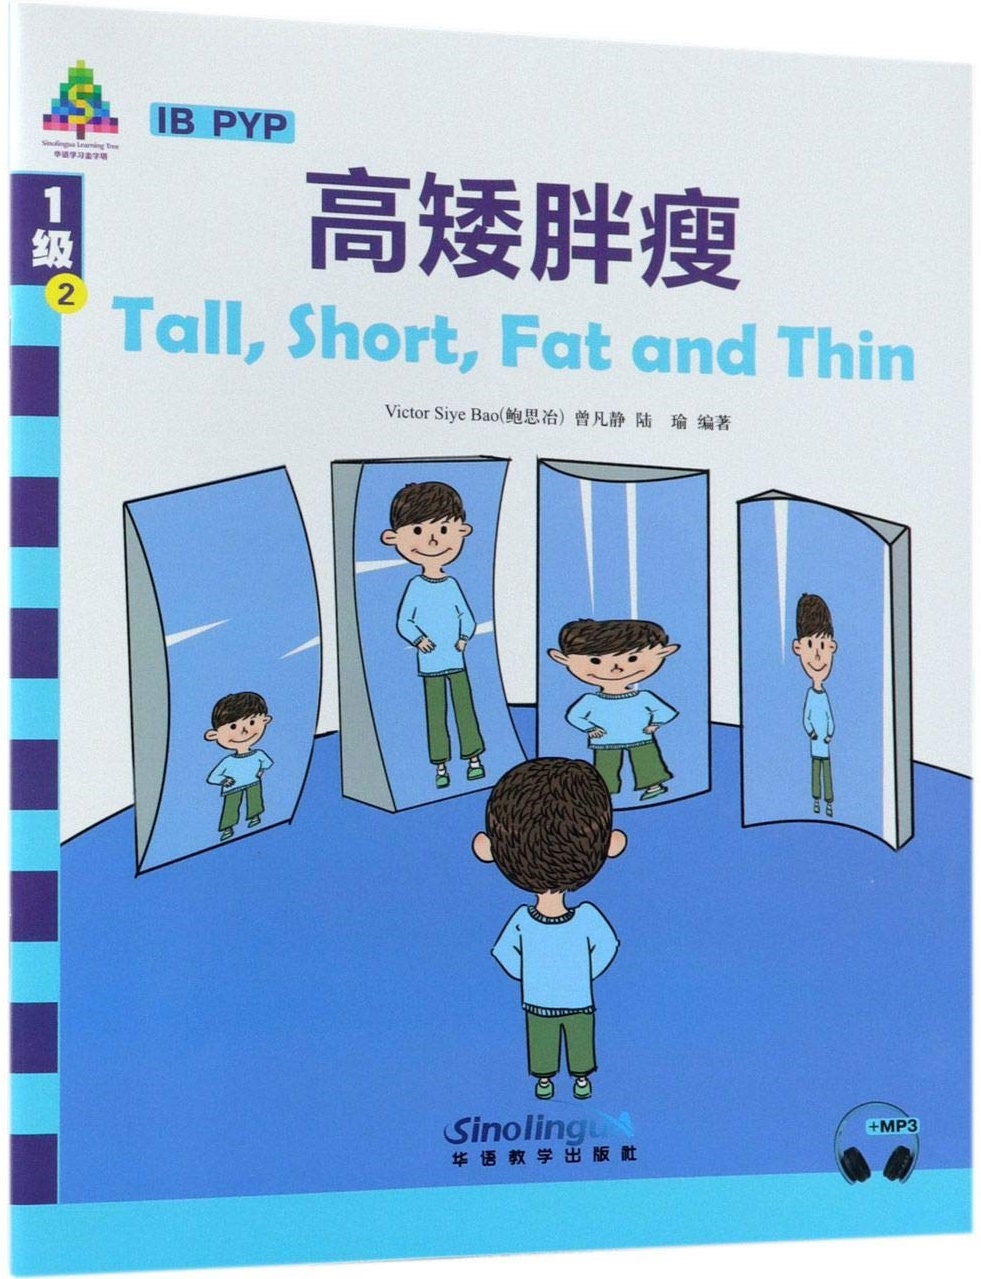 Tall, Short, Fat and Thin - Sinolingua Learning Tree for IB PYP (Level 1)